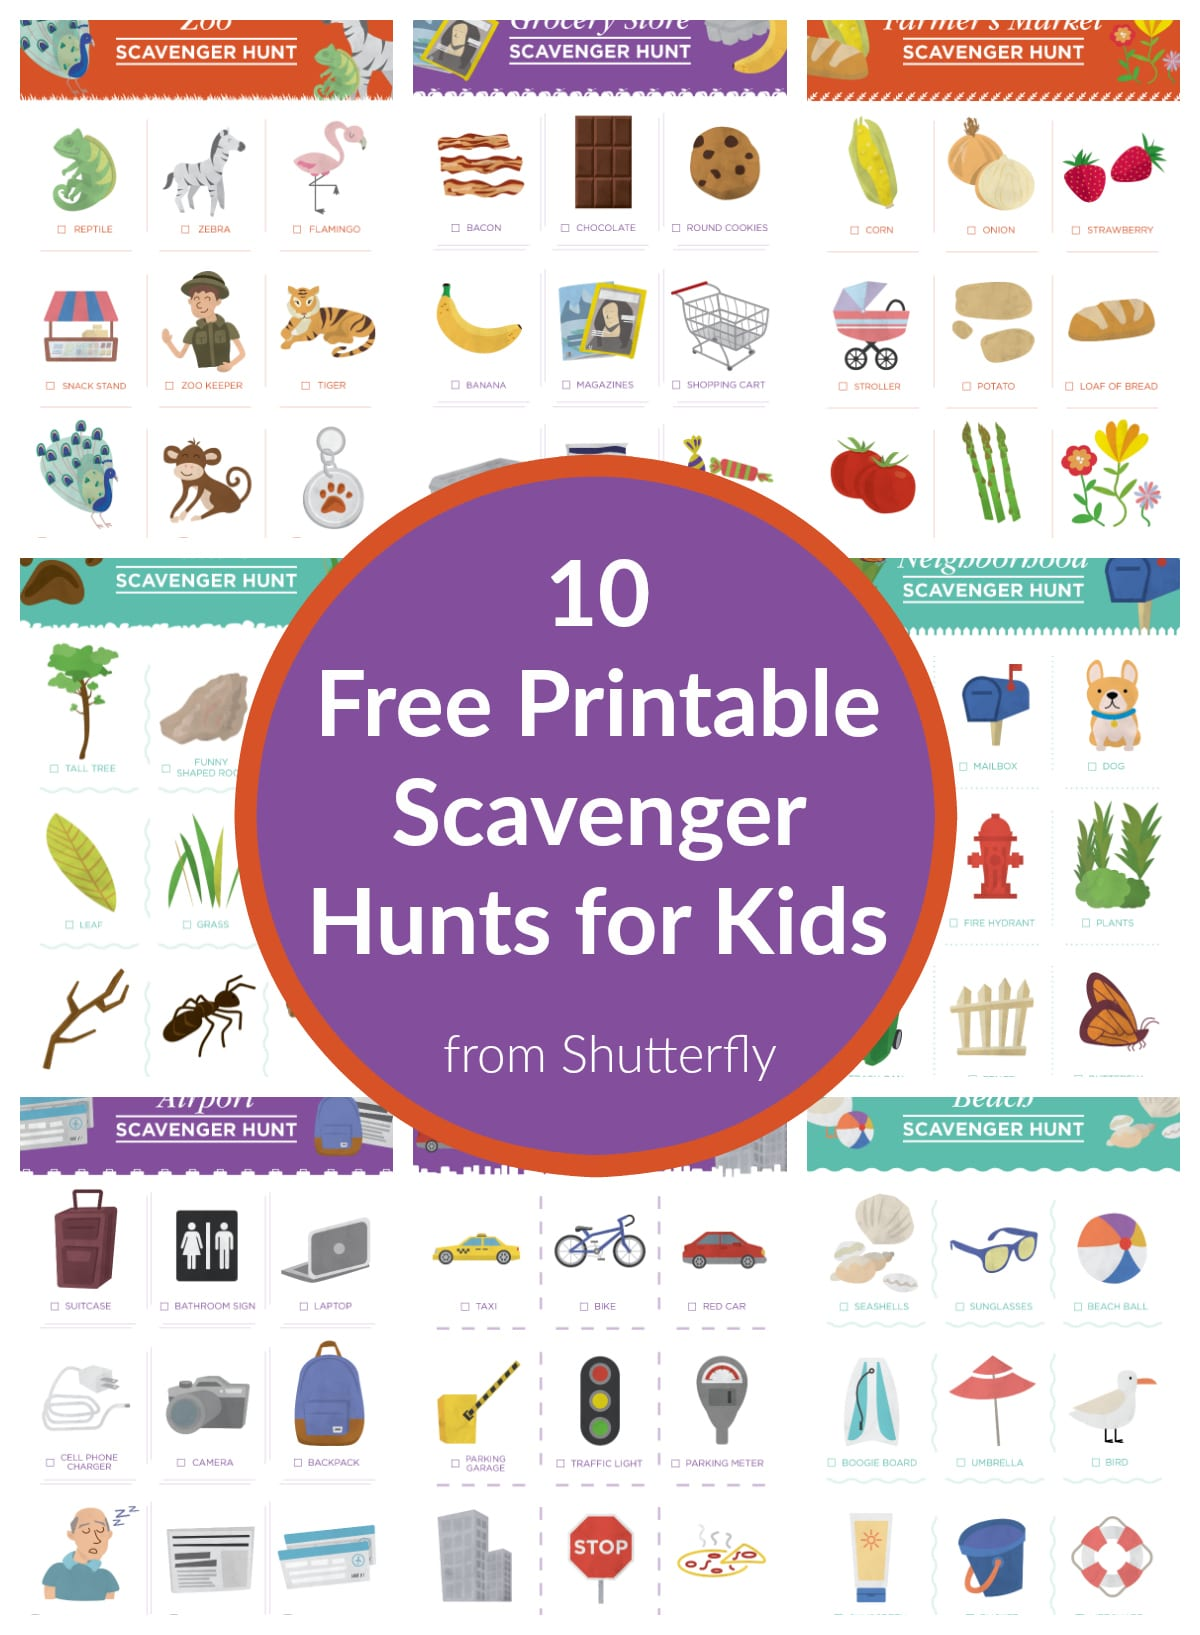 graphic about Printable Scavenger Hunt known as 10 Free of charge Scavenger Hunt Printables for Small children in opposition to Shutterfly